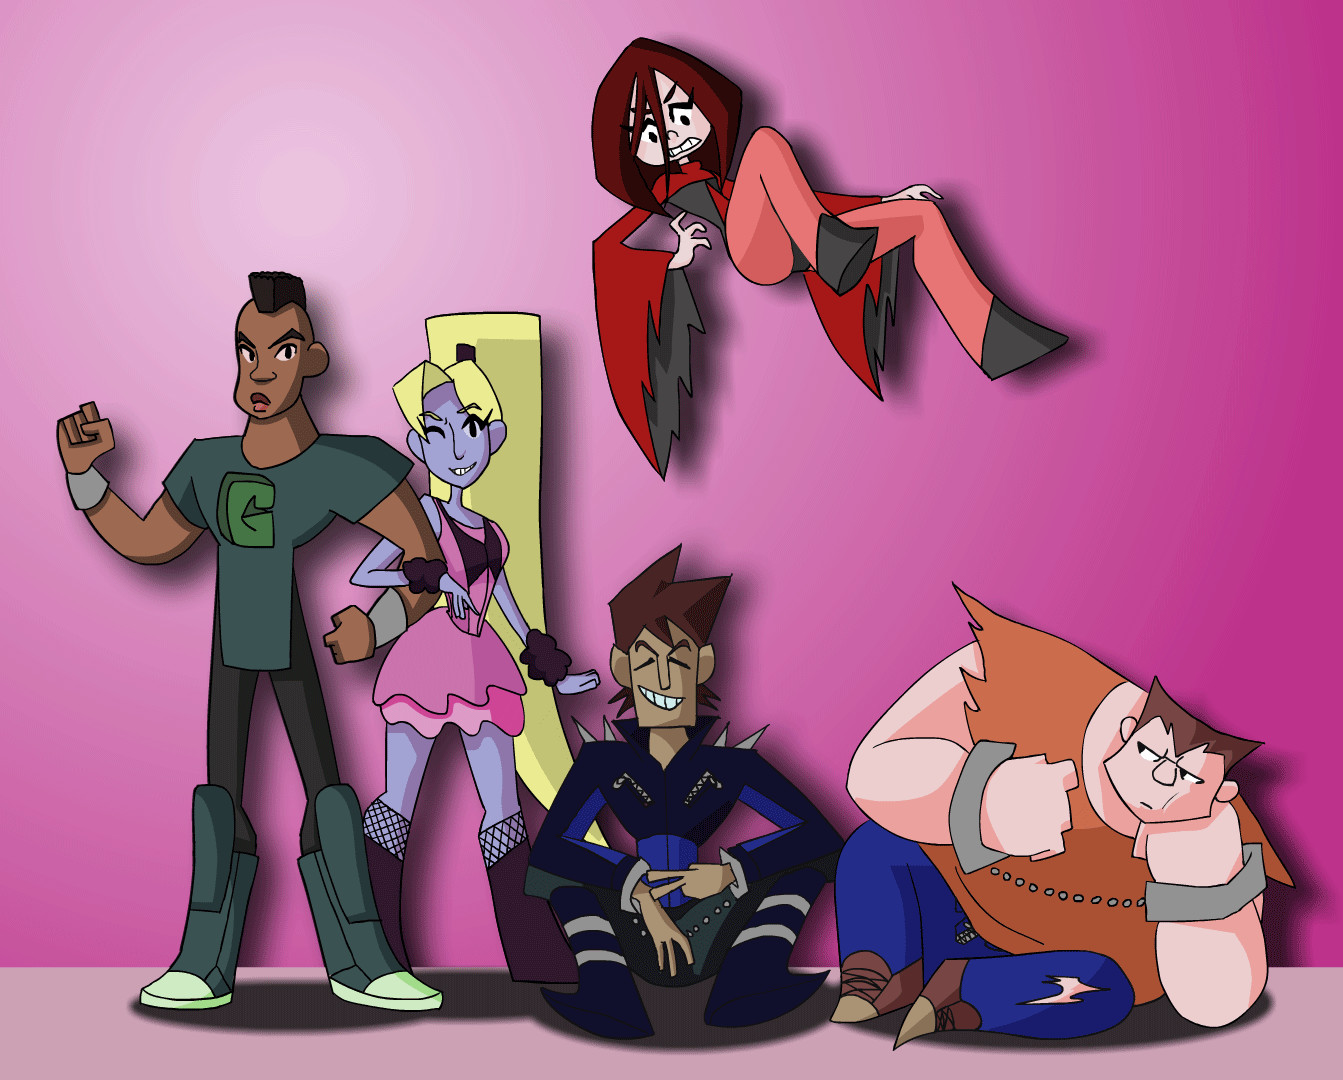 Group shot of 3 junior heroes and their streetwise adversaries. (Top)Levitator, (Left to right) Granite, Henrietta the Hair, Julio, and Hank.